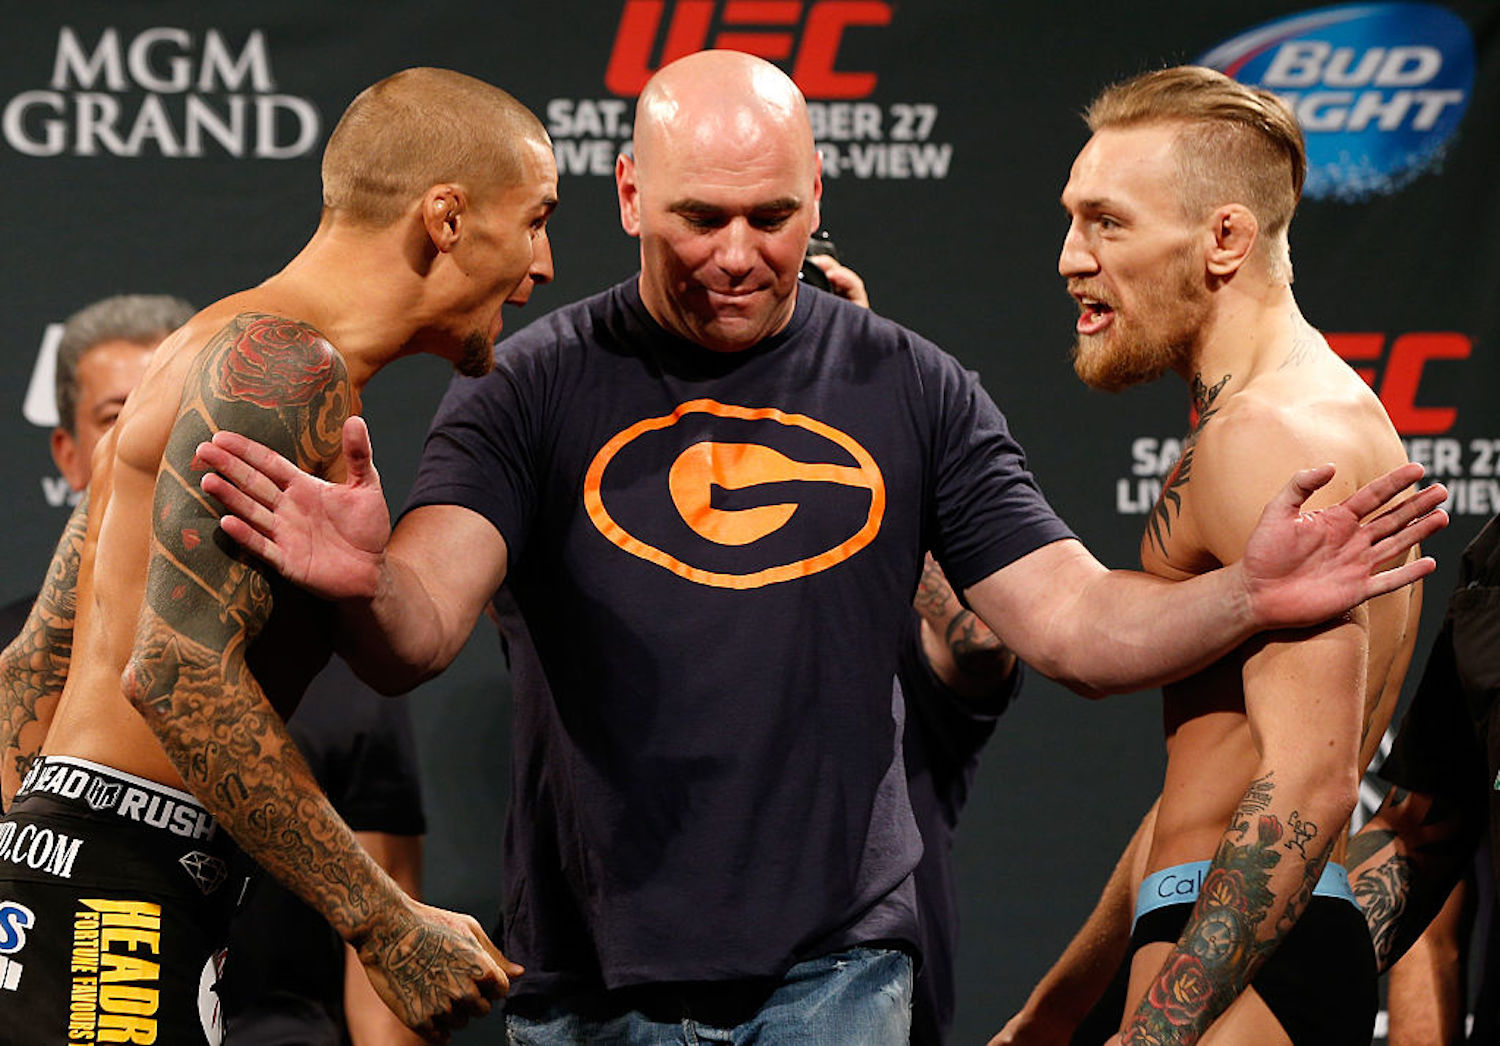 Dustin Poirier Has a Gory Wish for His Upcoming Fight Against Conor McGregor: 'What I Want Is for Both of Us to be Dripping Blood'